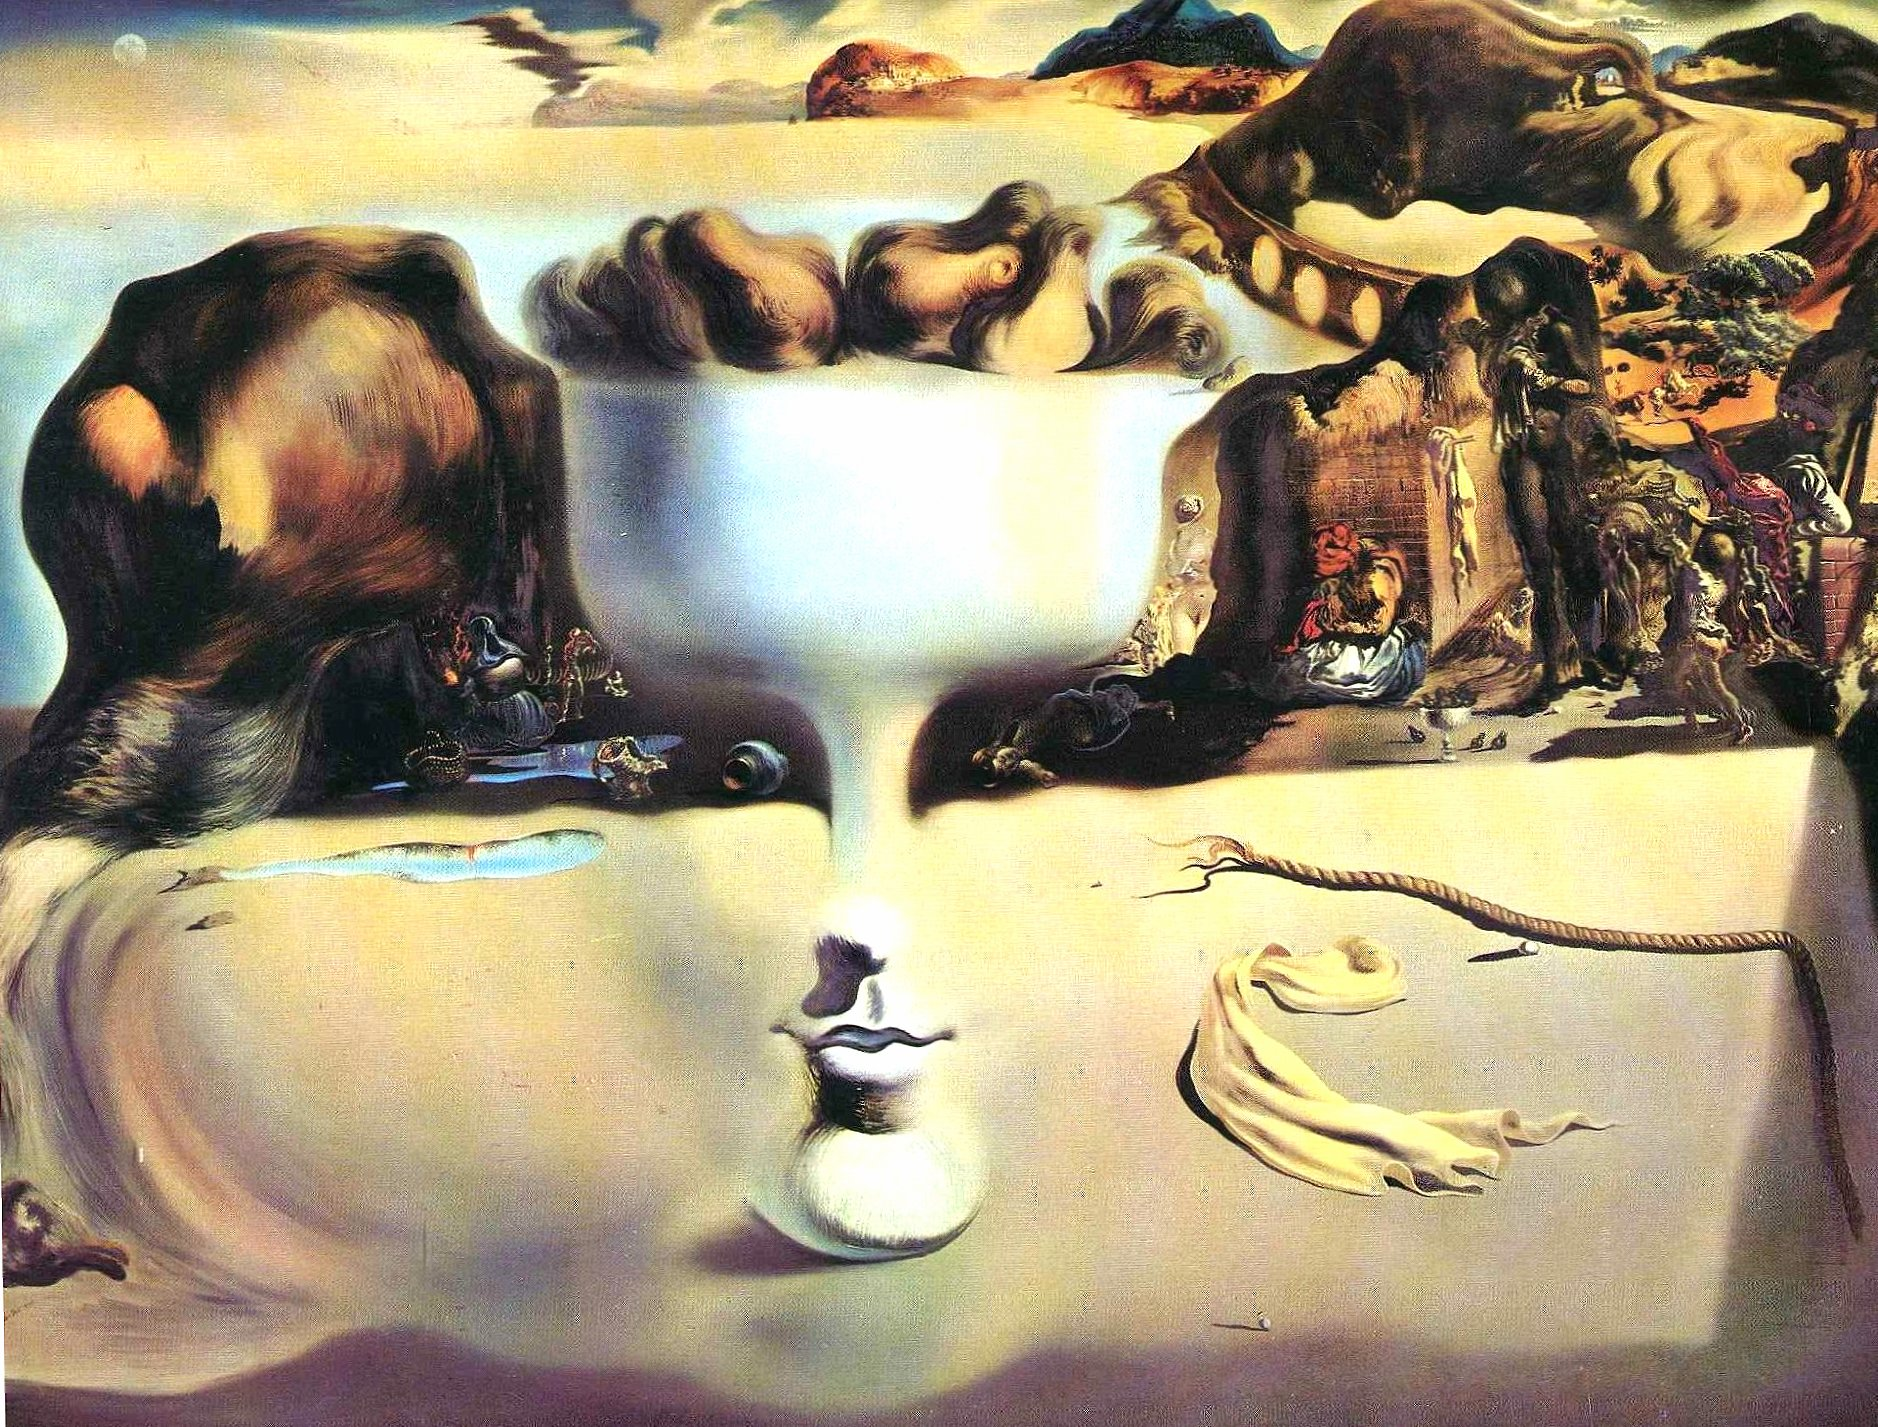 Salvador dali art artistic painting painters at 1024 x 768 size wallpapers HD quality